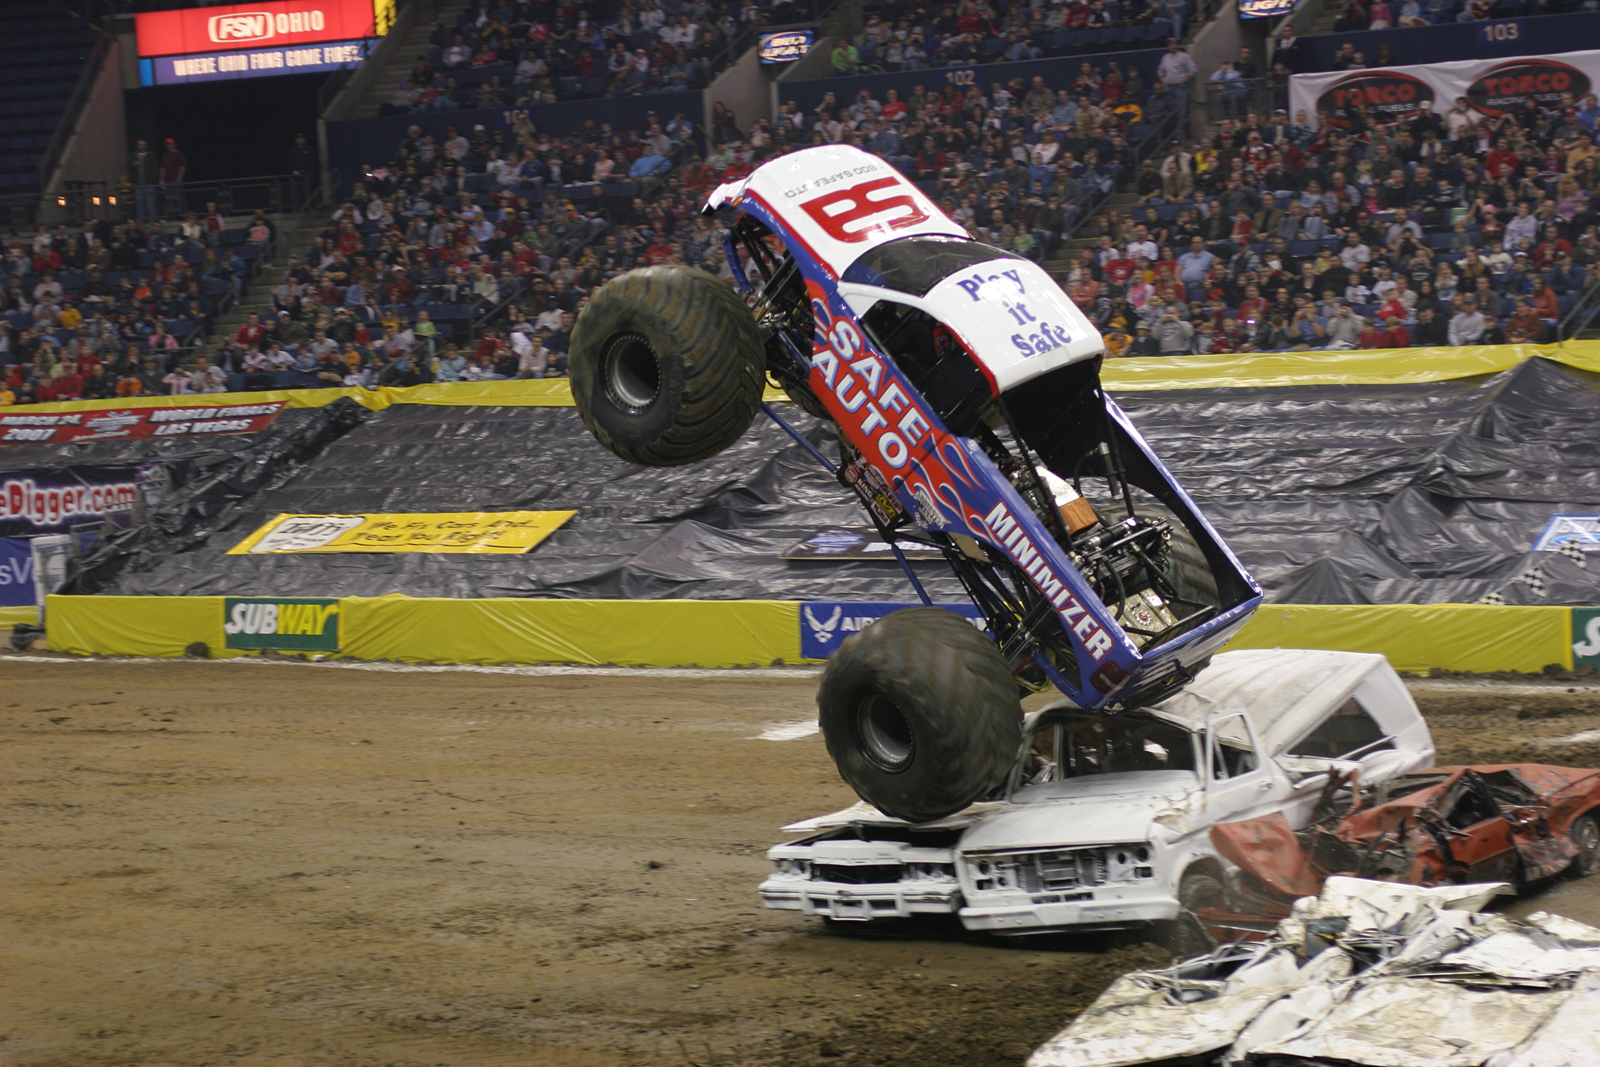 monstertrucks_wallpaper_007_1600_1067.jpg